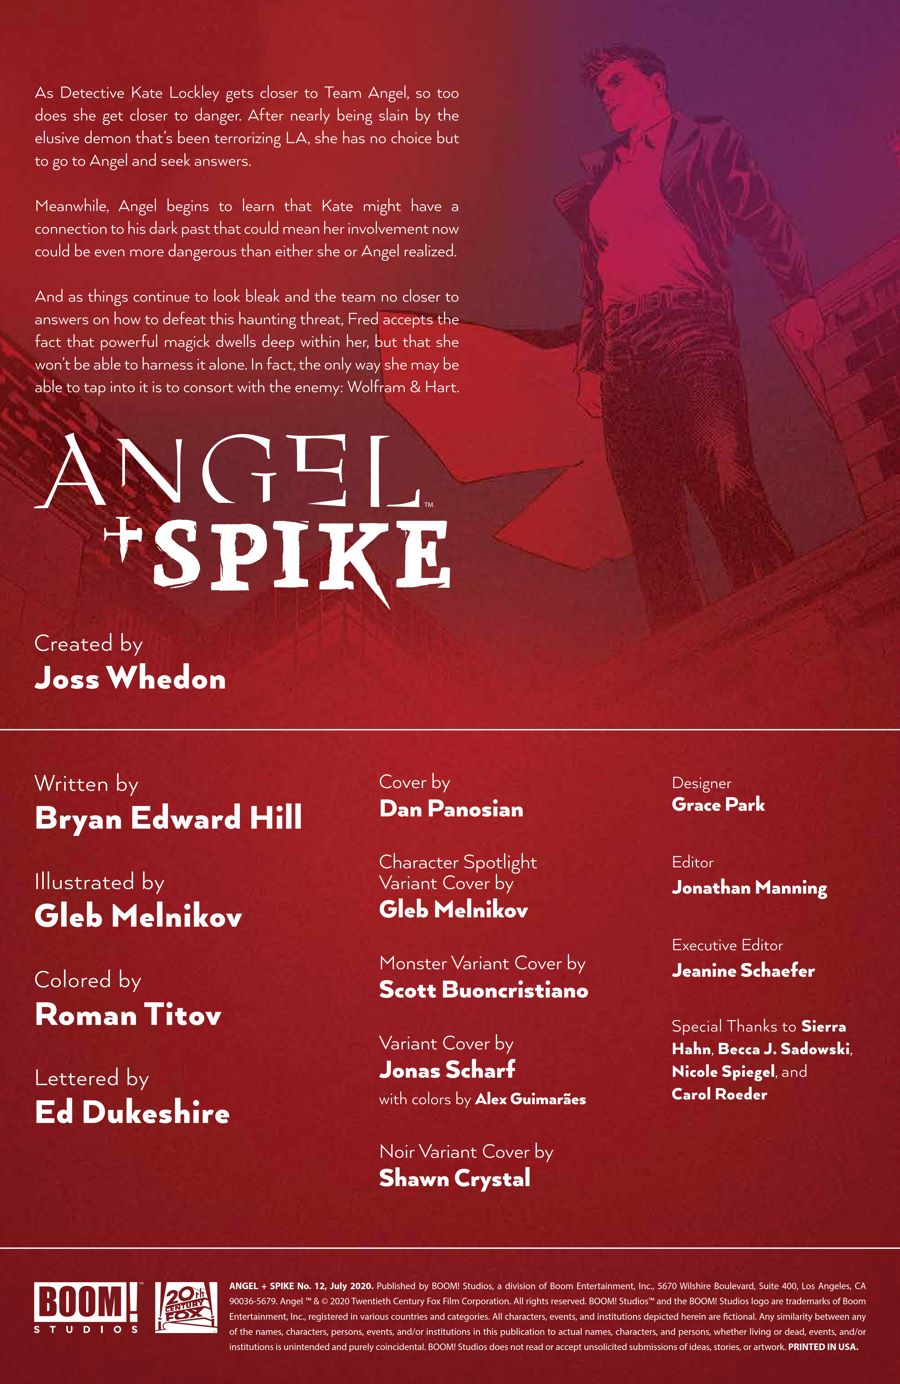 Angel_012_PRESS_2 ComicList Previews: ANGEL AND SPIKE #12